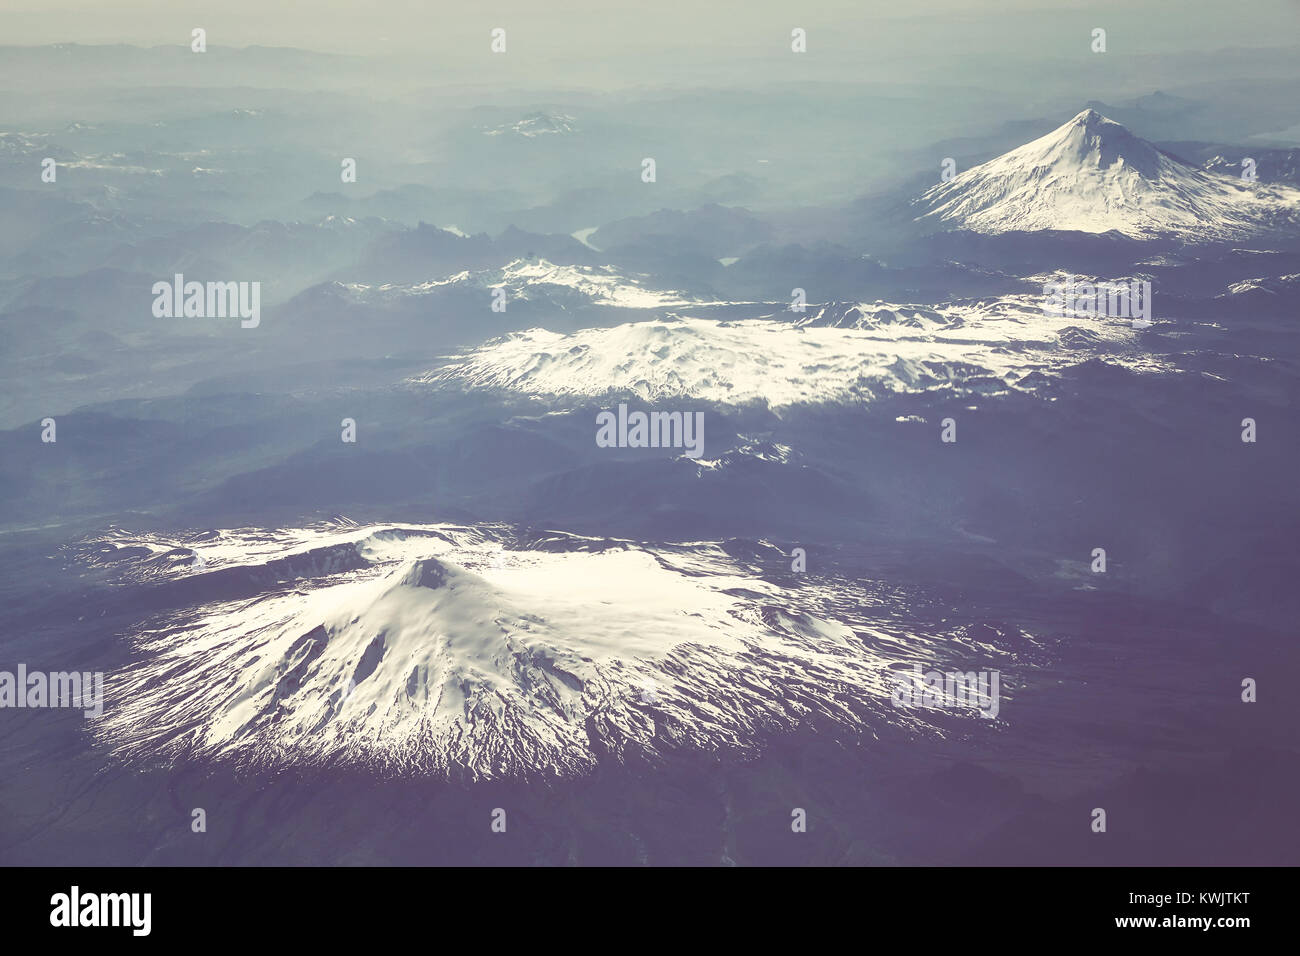 Retro stylized aerial picture of the Andes mountain range, Chile. - Stock Image